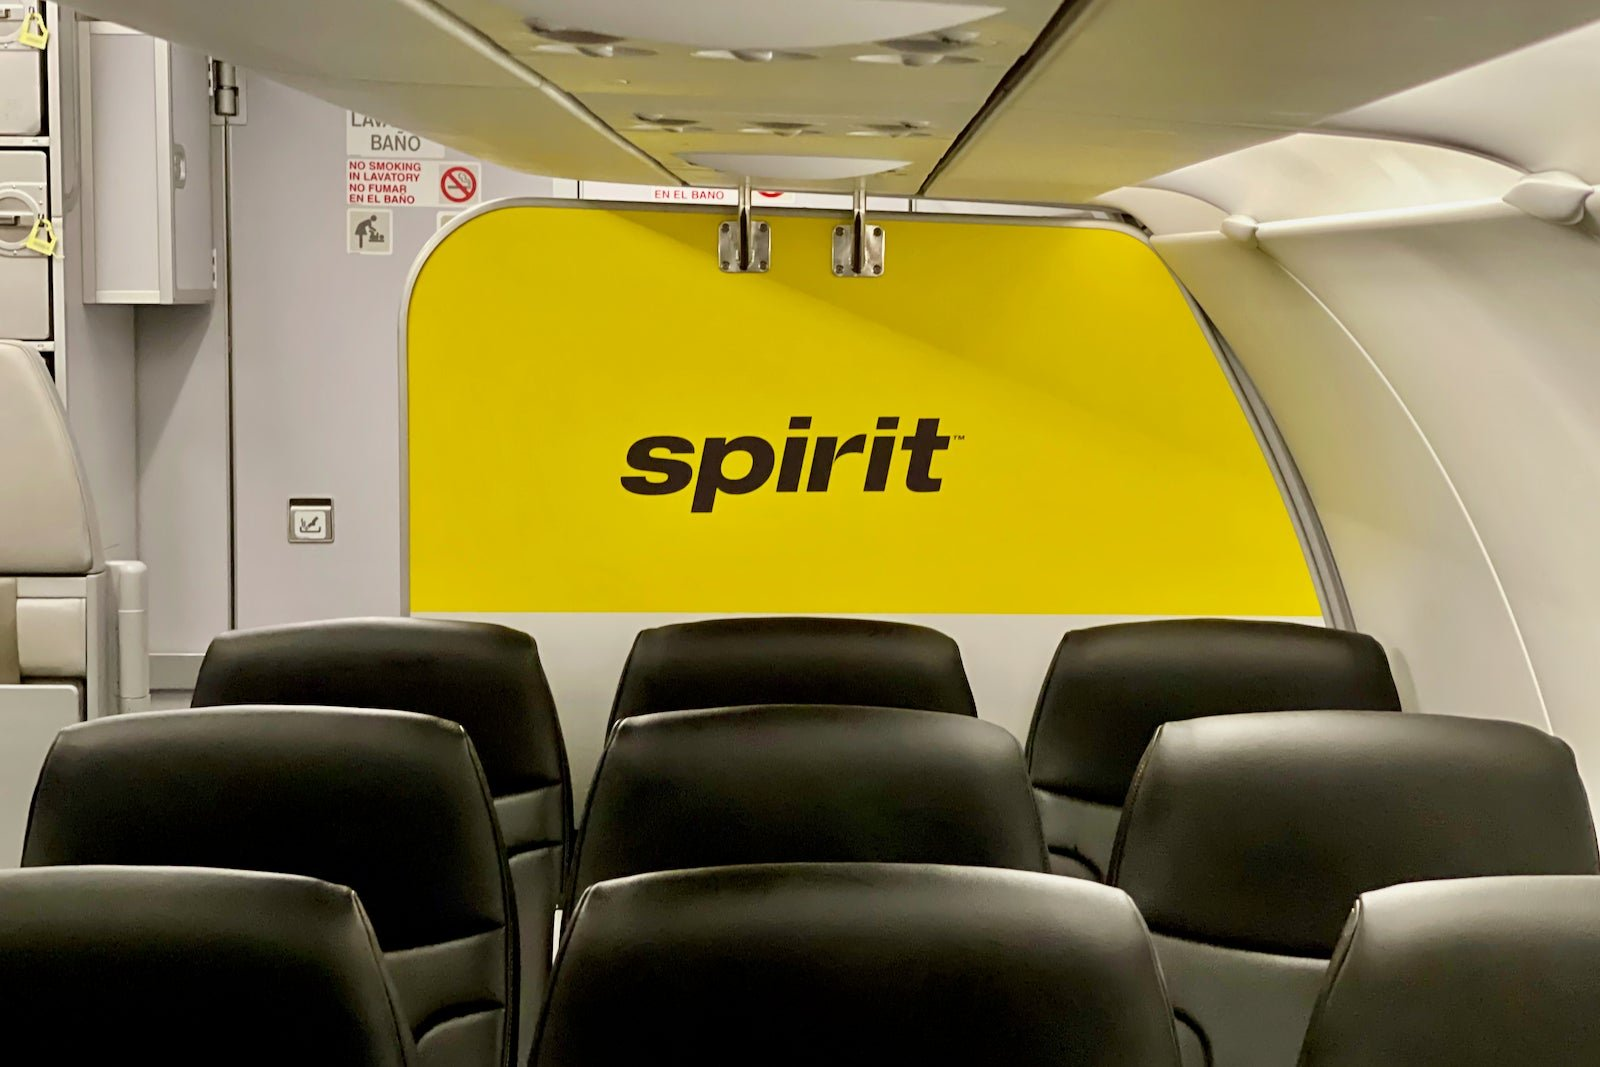 Spirit to enter Miami with 30 routes in major competitive shake-up